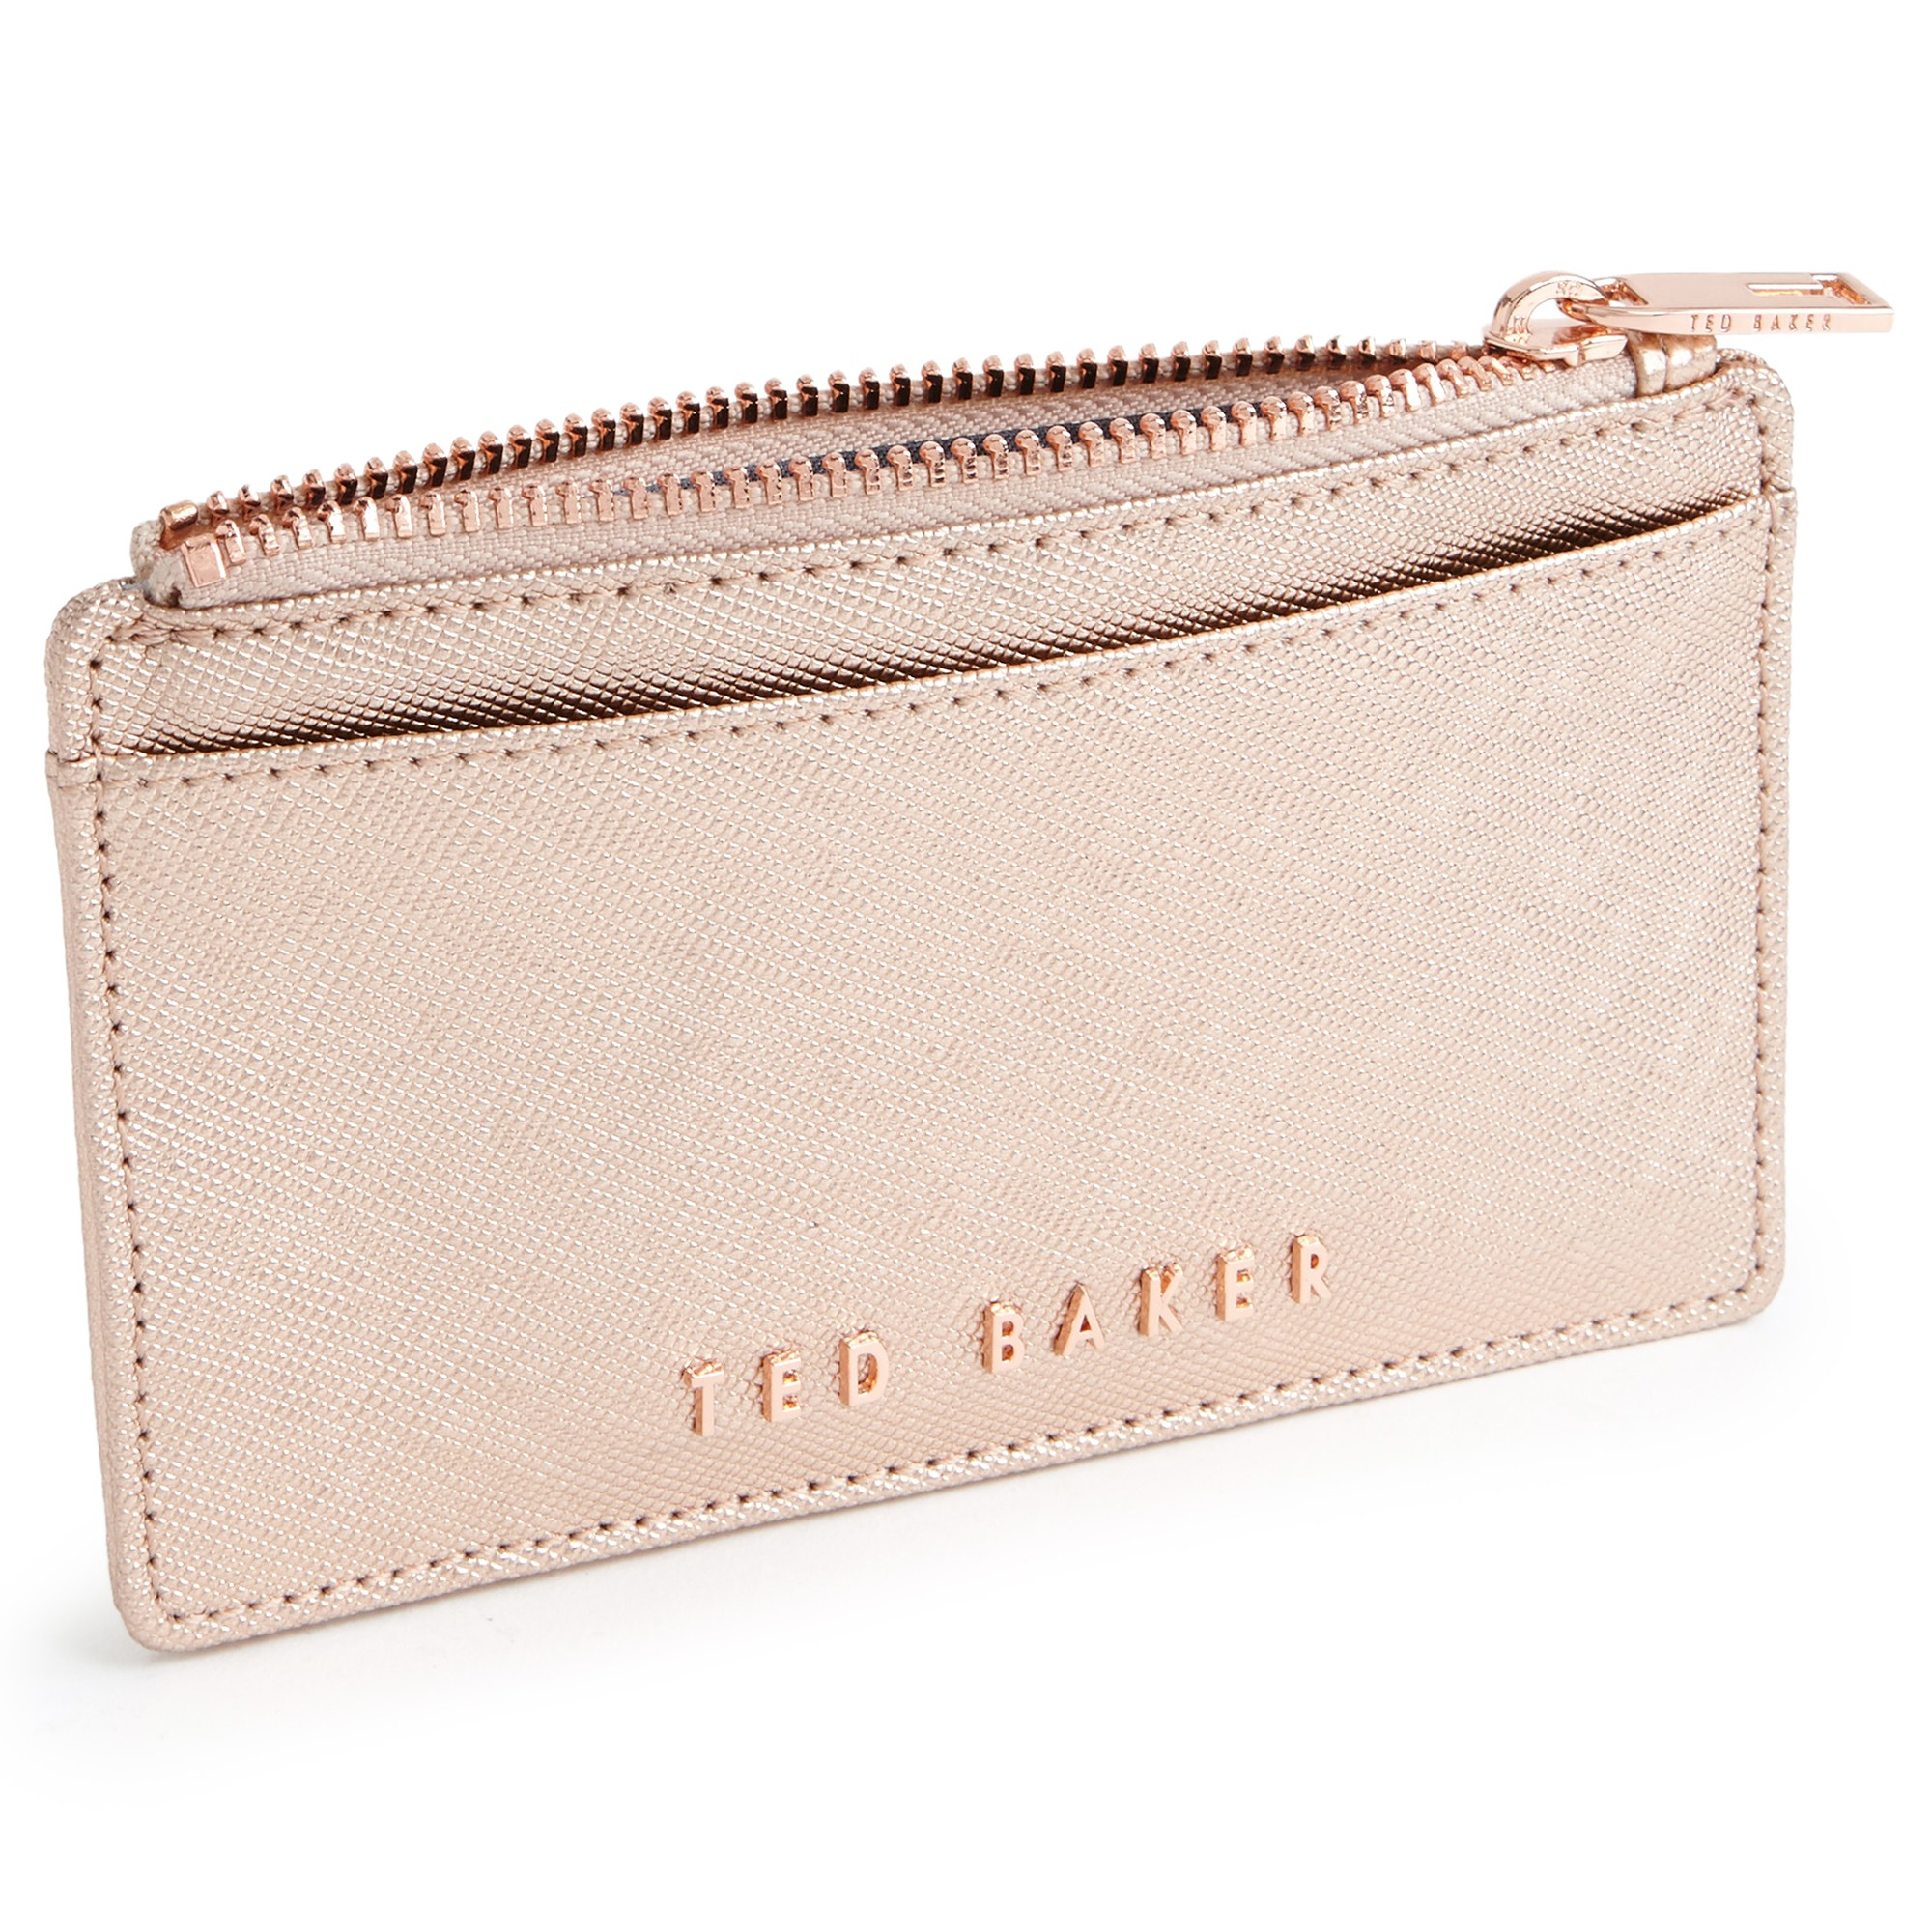 e7887872f5 Ted Baker Crosshatch Leather Metallic Leather Coin Purse in Pink - Lyst